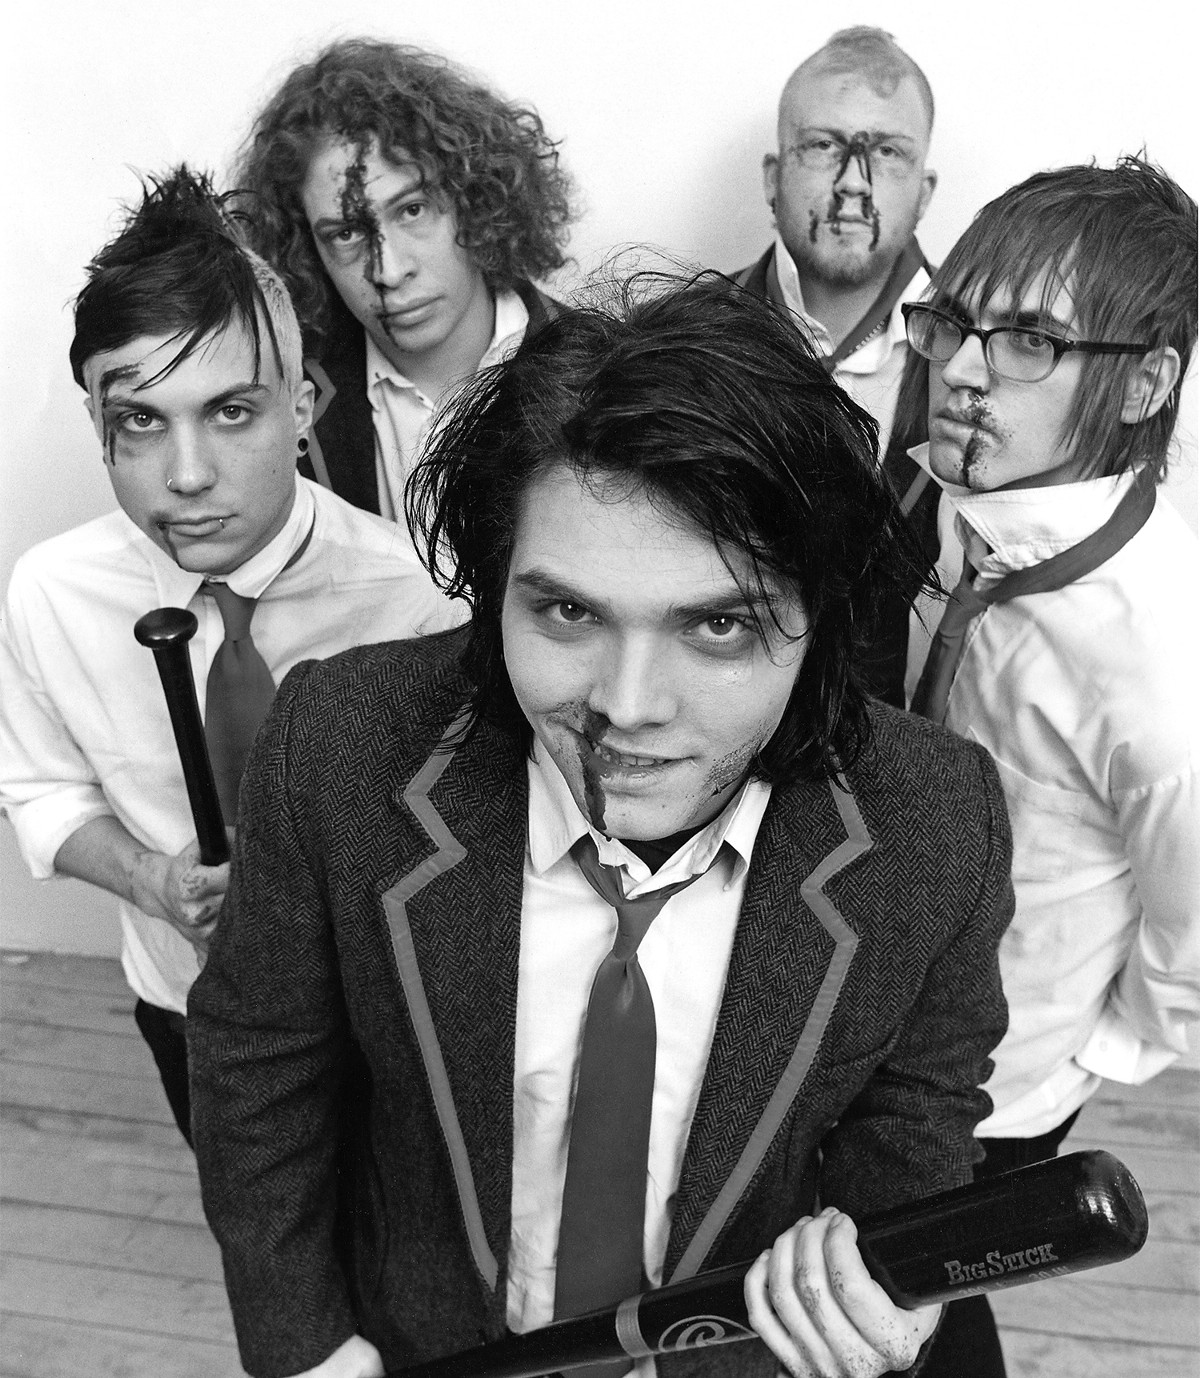 Mcr Toured With